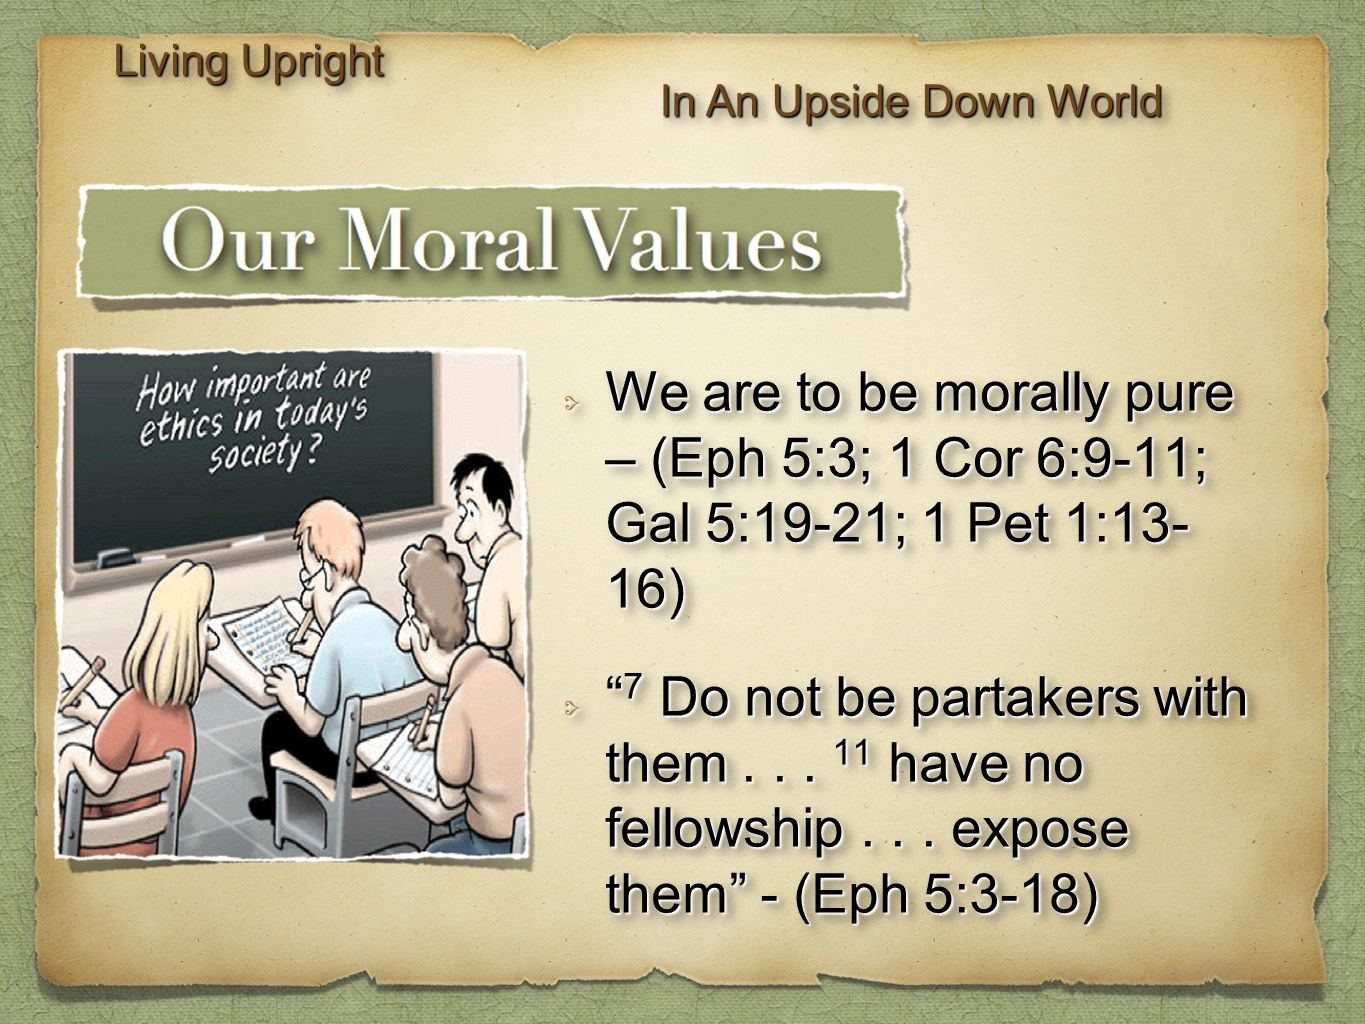 "We are to be morally pure – (Eph 5:3; 1 Cor 6:9-11; Gal 5:19-21; 1 Pet 1:13- 16) "" 7 Do not be partakers with them... 11 have no fellowship... expose"